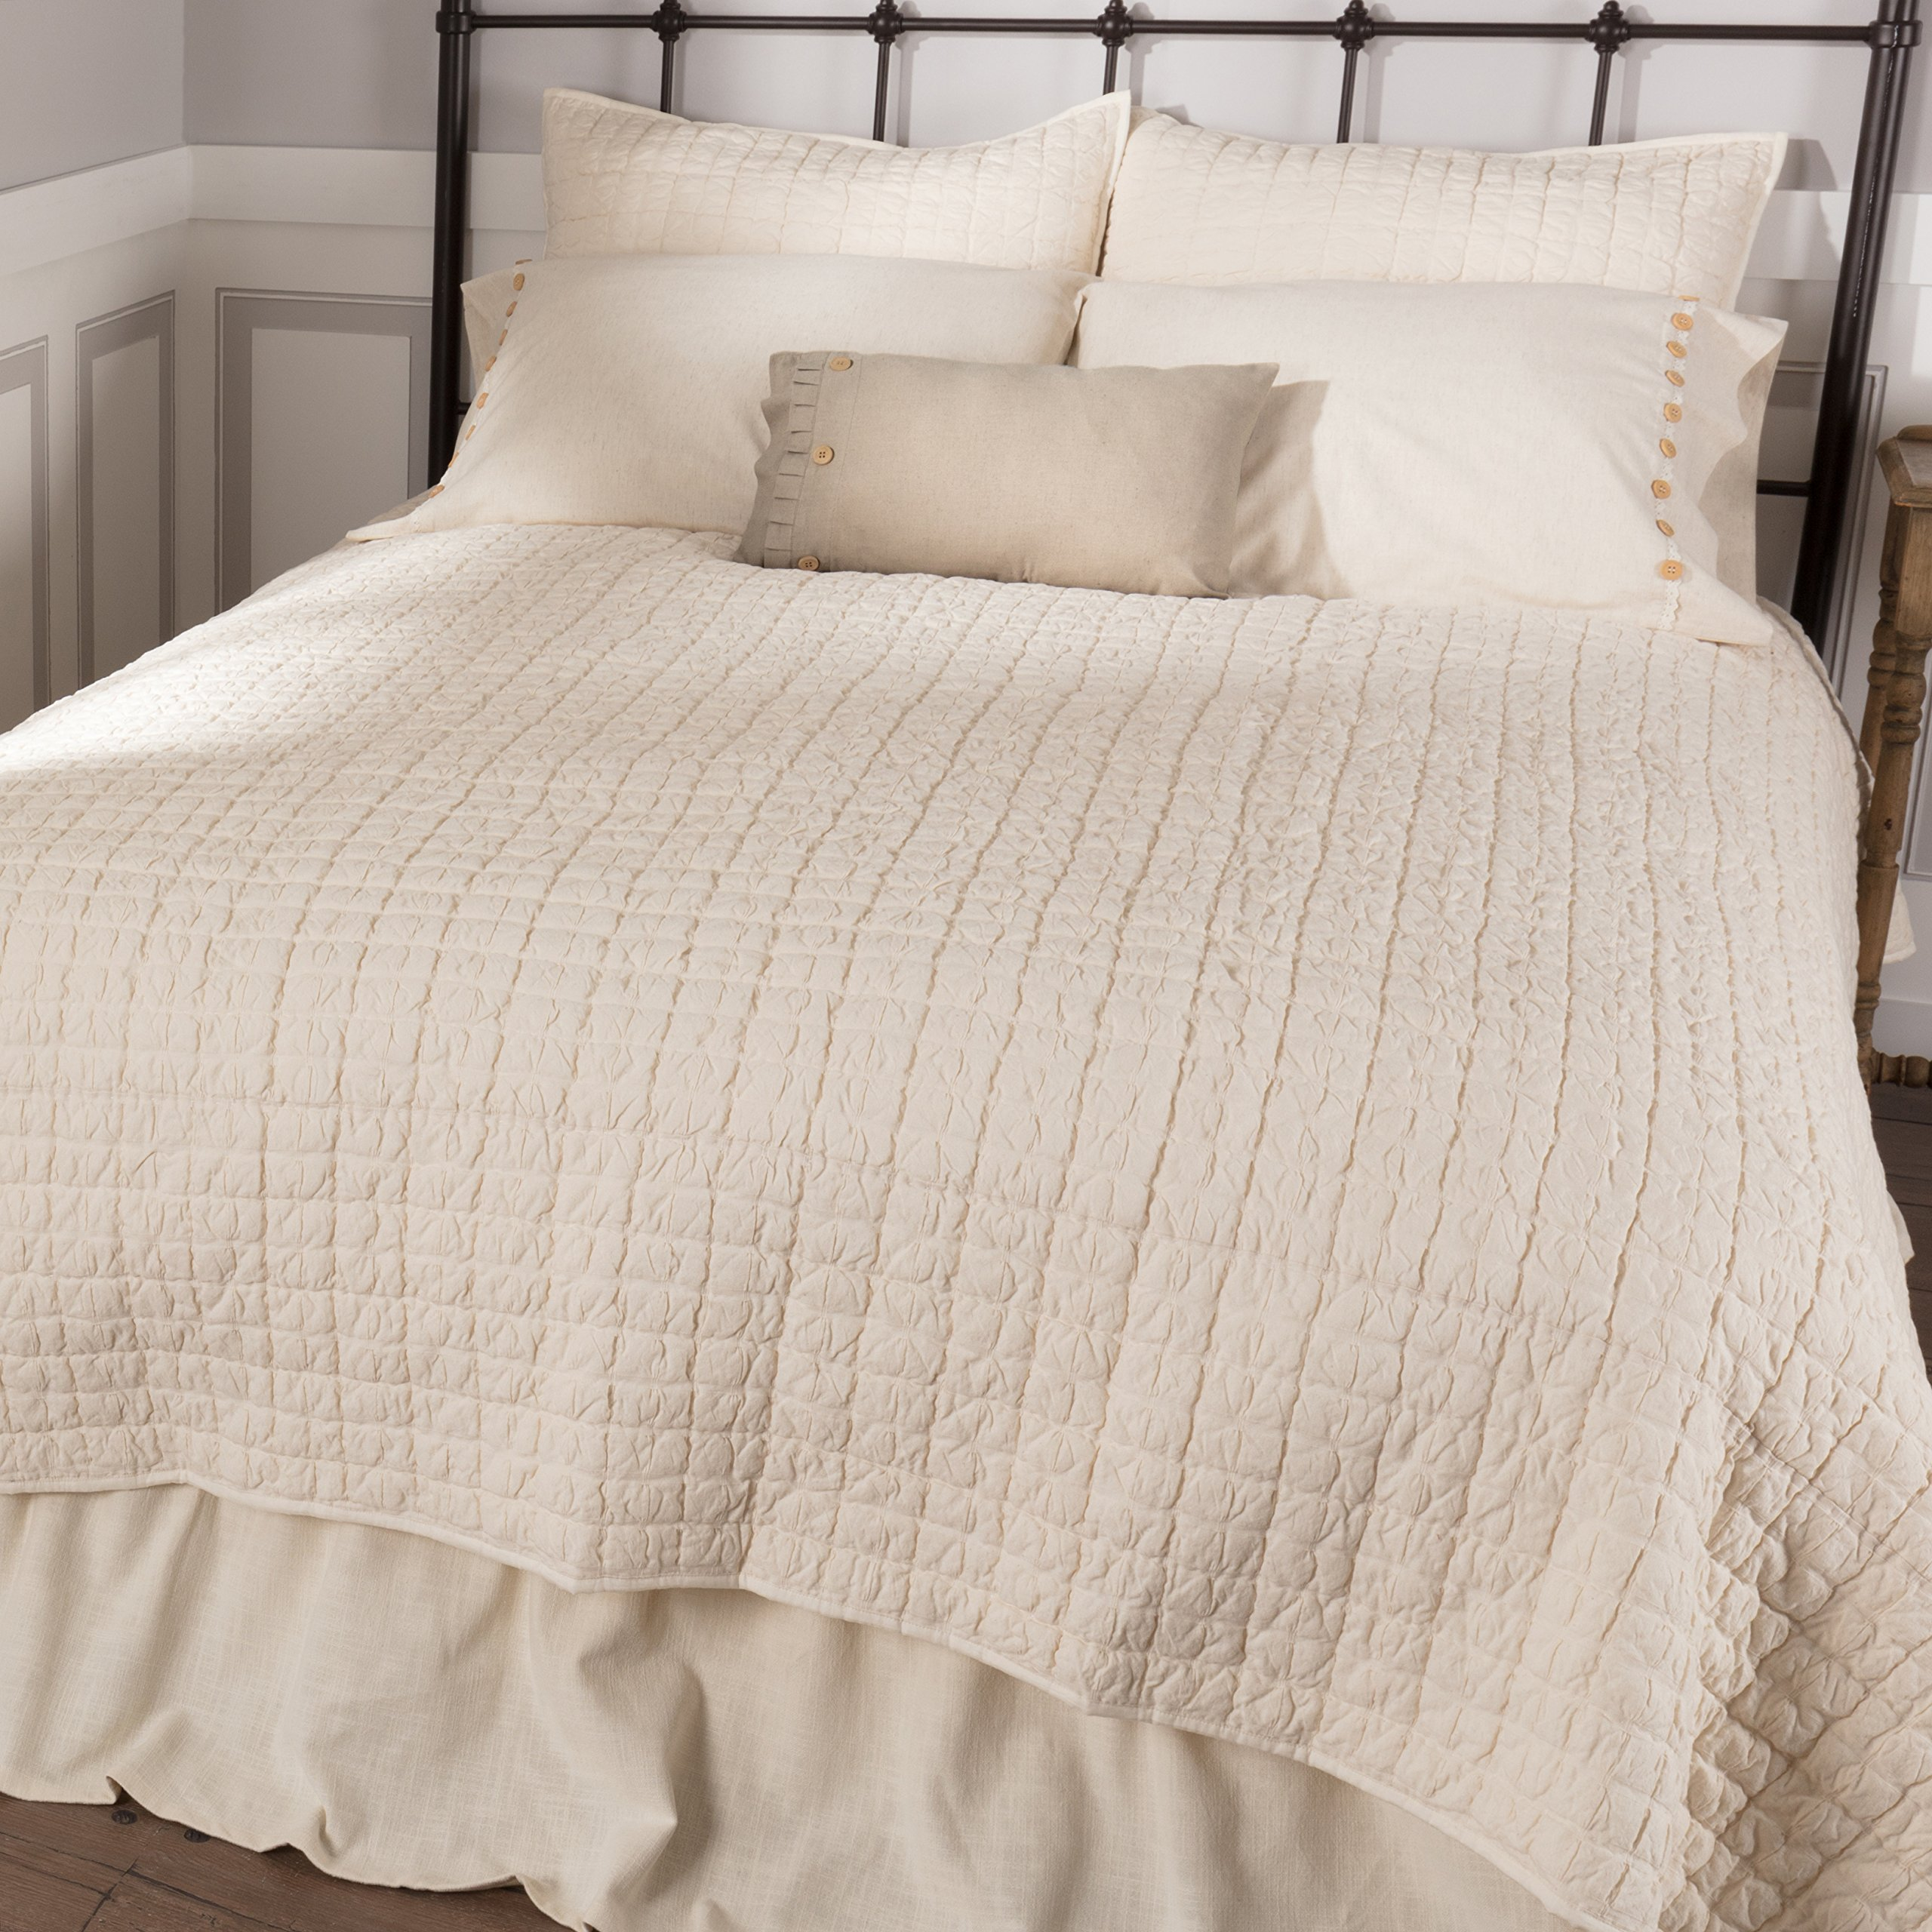 Piper Classics Clara's Cottage Natural Cream Quilt, Luxury King 105x120, Oversized, Vintage Farmhouse Style Bedspread